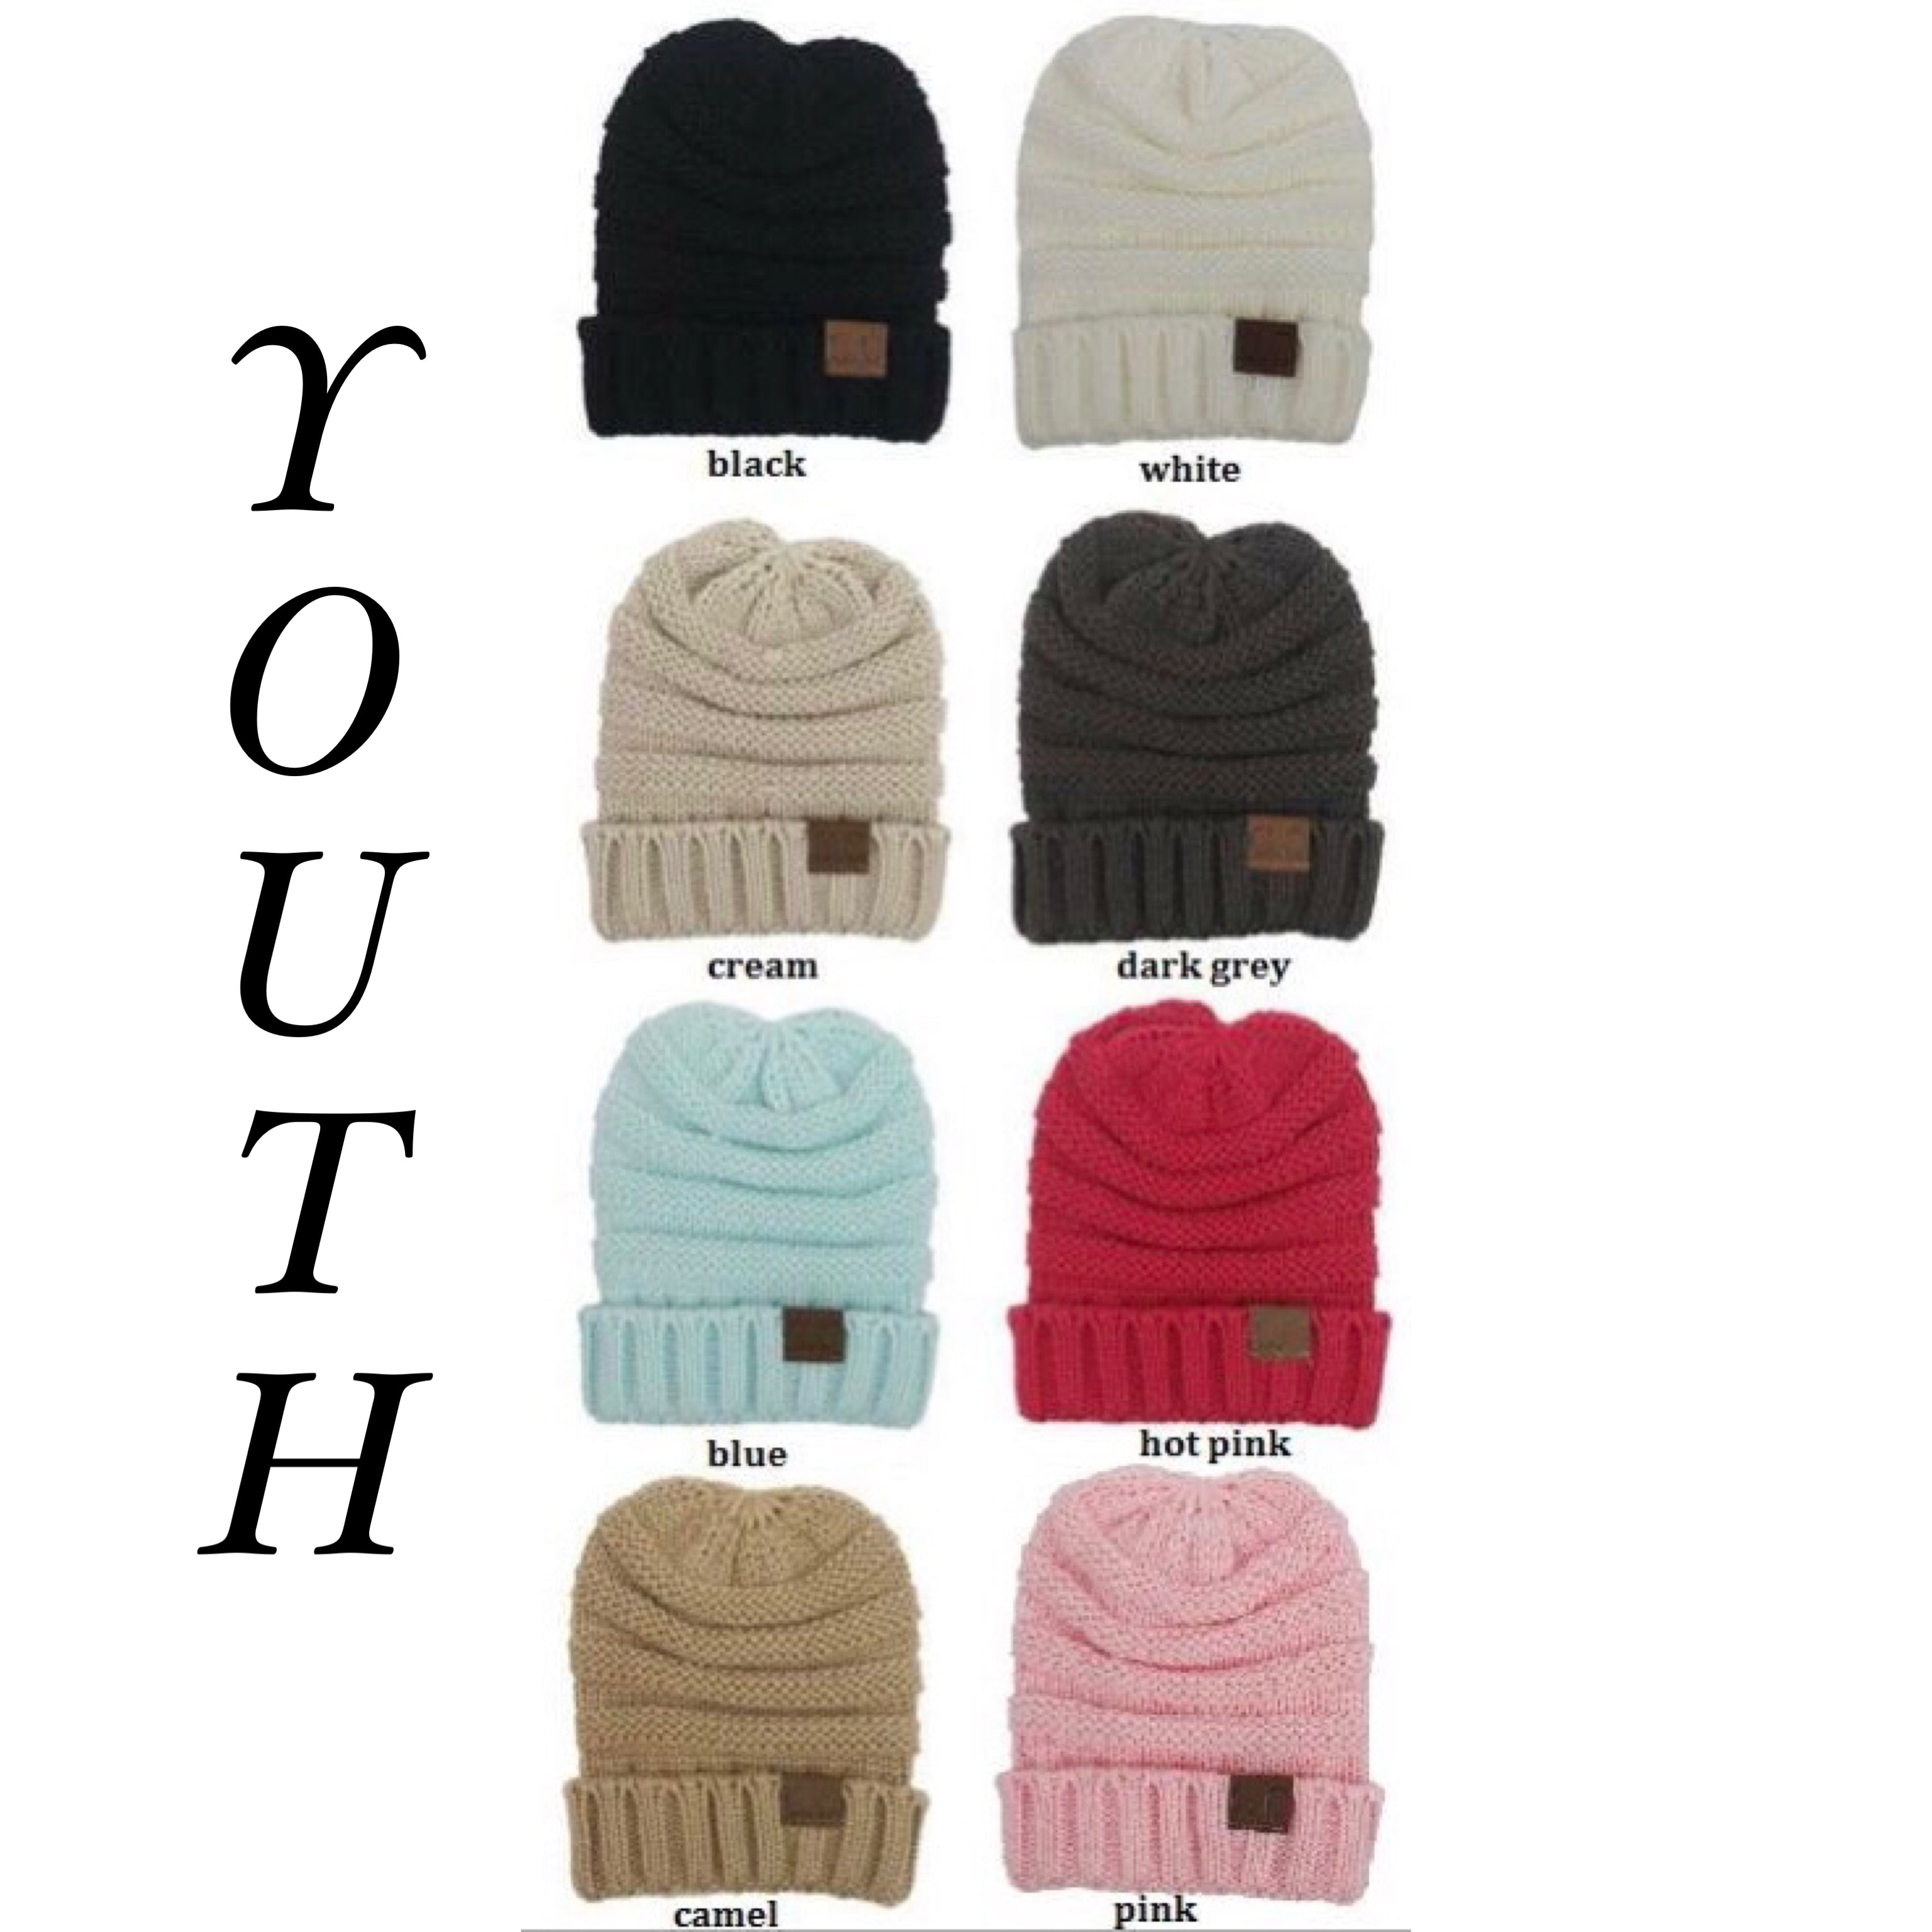 BEANIES - ADULT & YOUTH